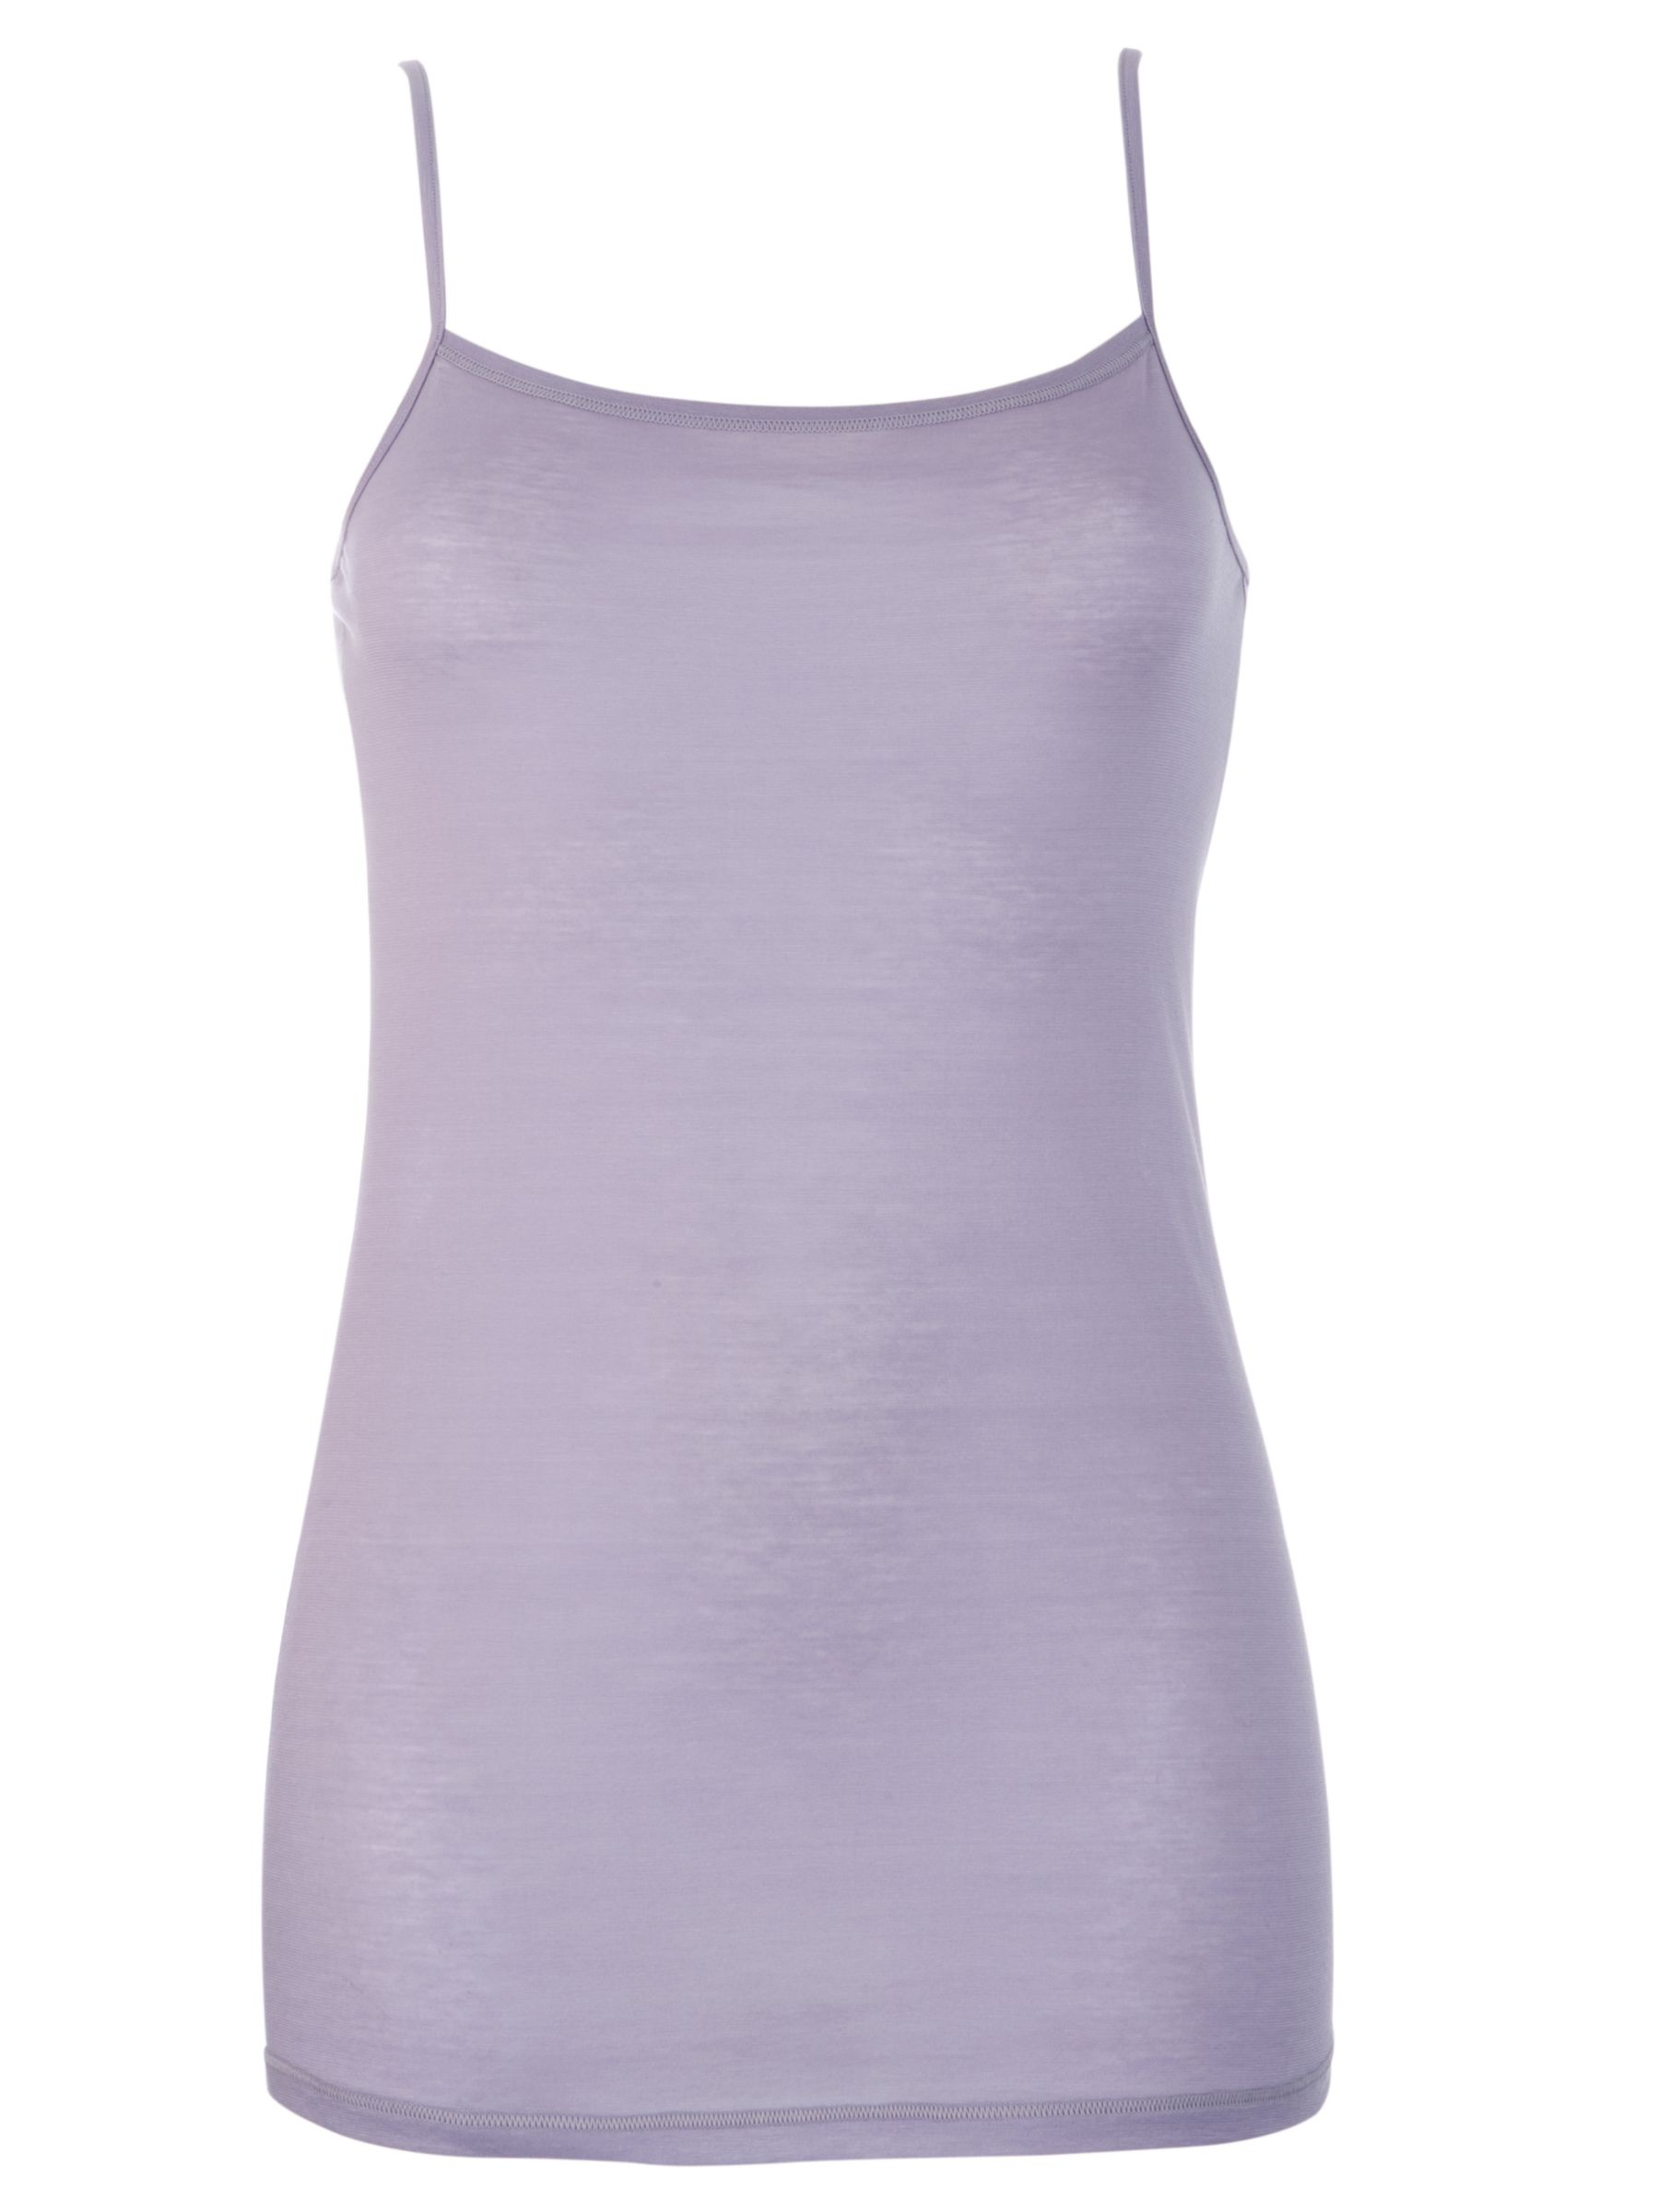 Hanro Paper Touch Camisole, Dusk